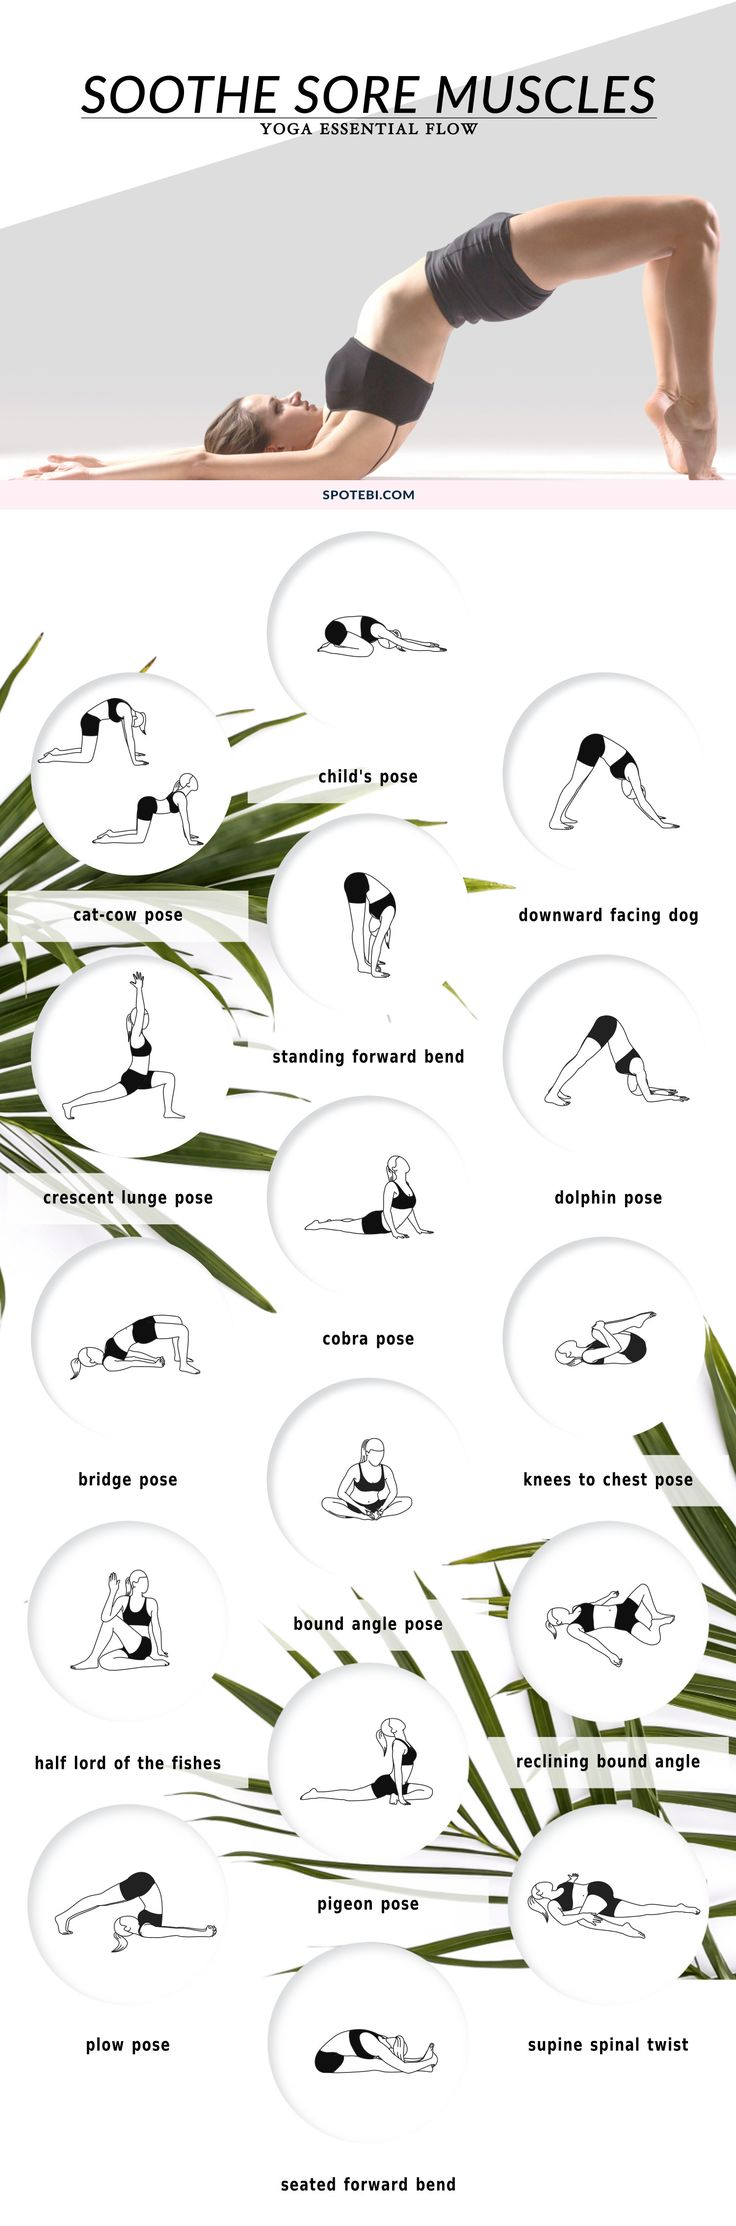 Here's a yoga routine to soothe sore muscles after a workout.